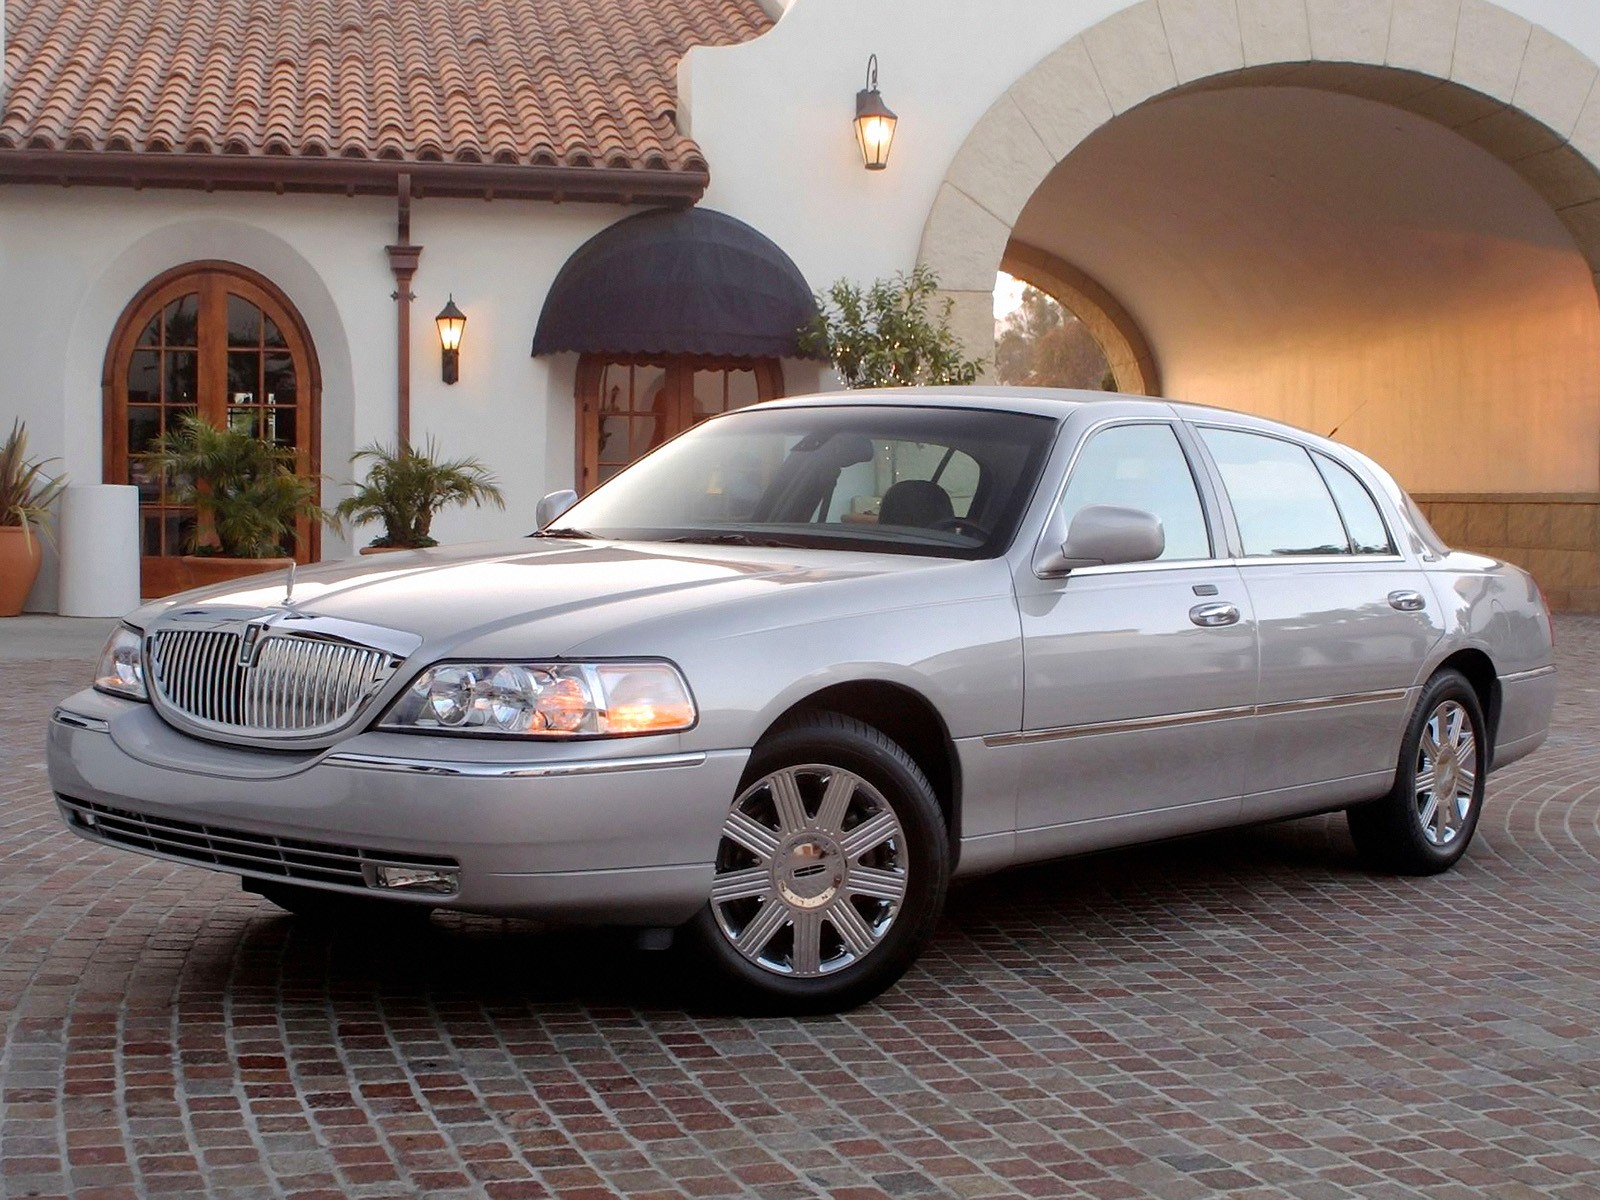 a car lincoln considered few review moment dedicated still dropping for case the within there on town cartier retro was sale completely travel brief figured company but people